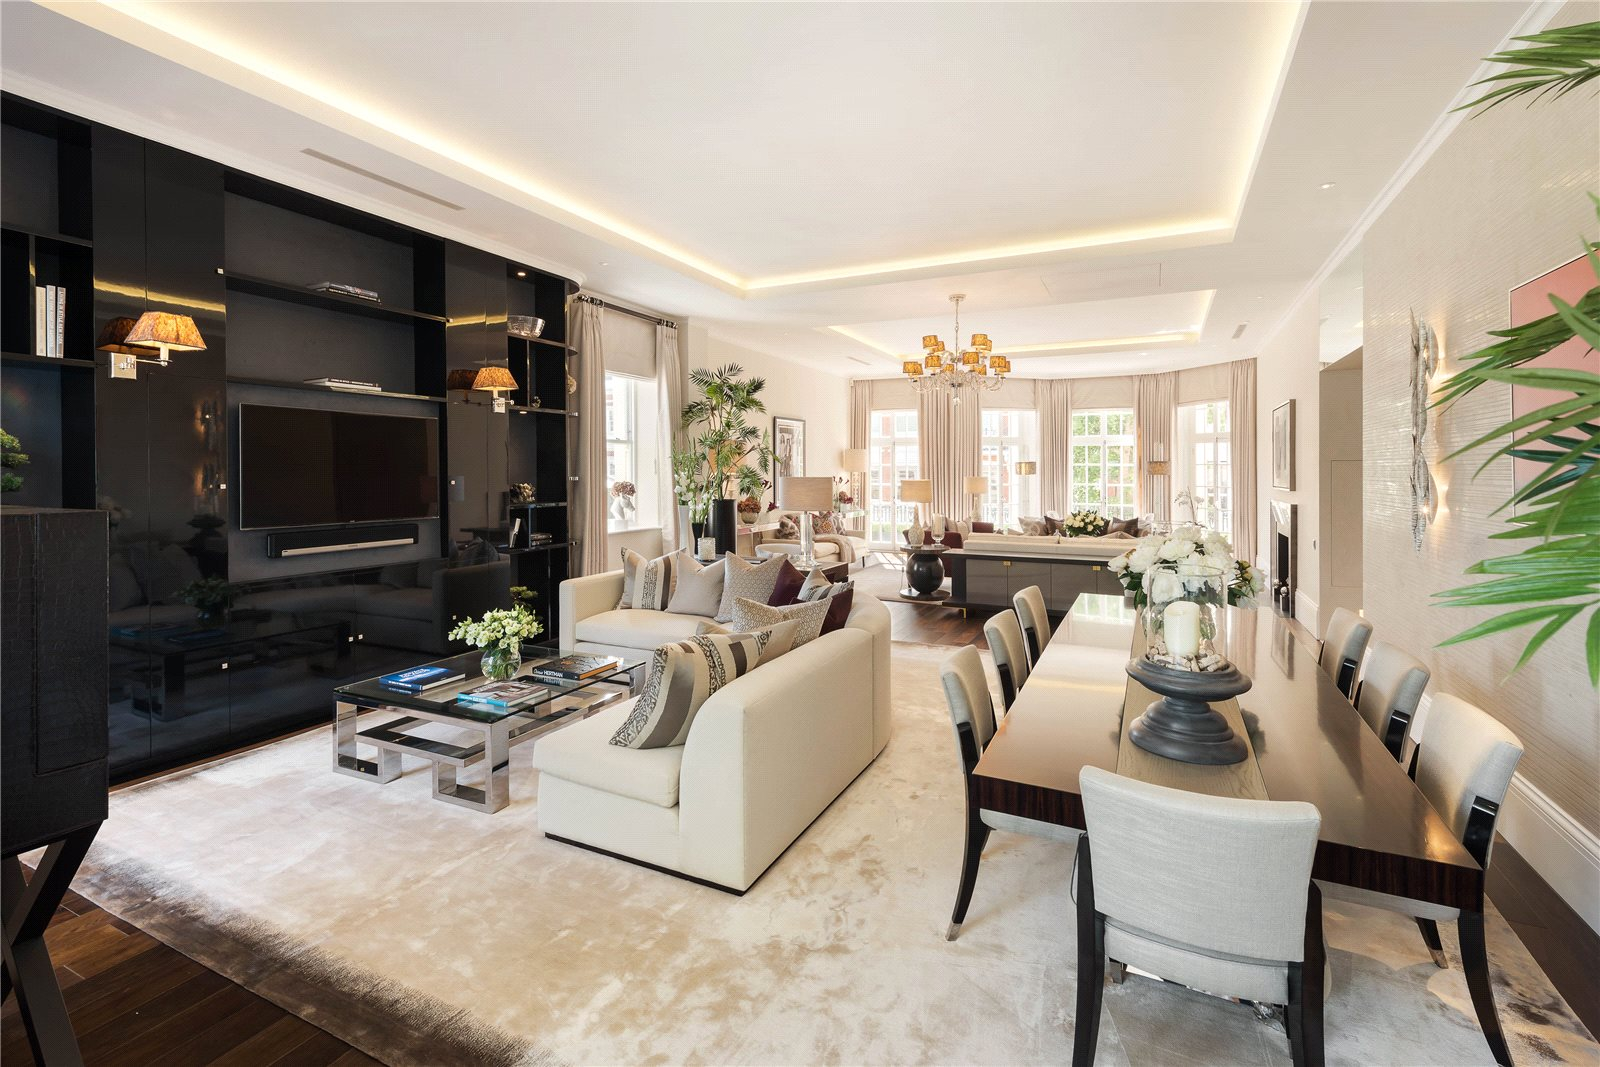 Apartments / Residences for Sale at Rutland Gardens, London, SW7 London, England